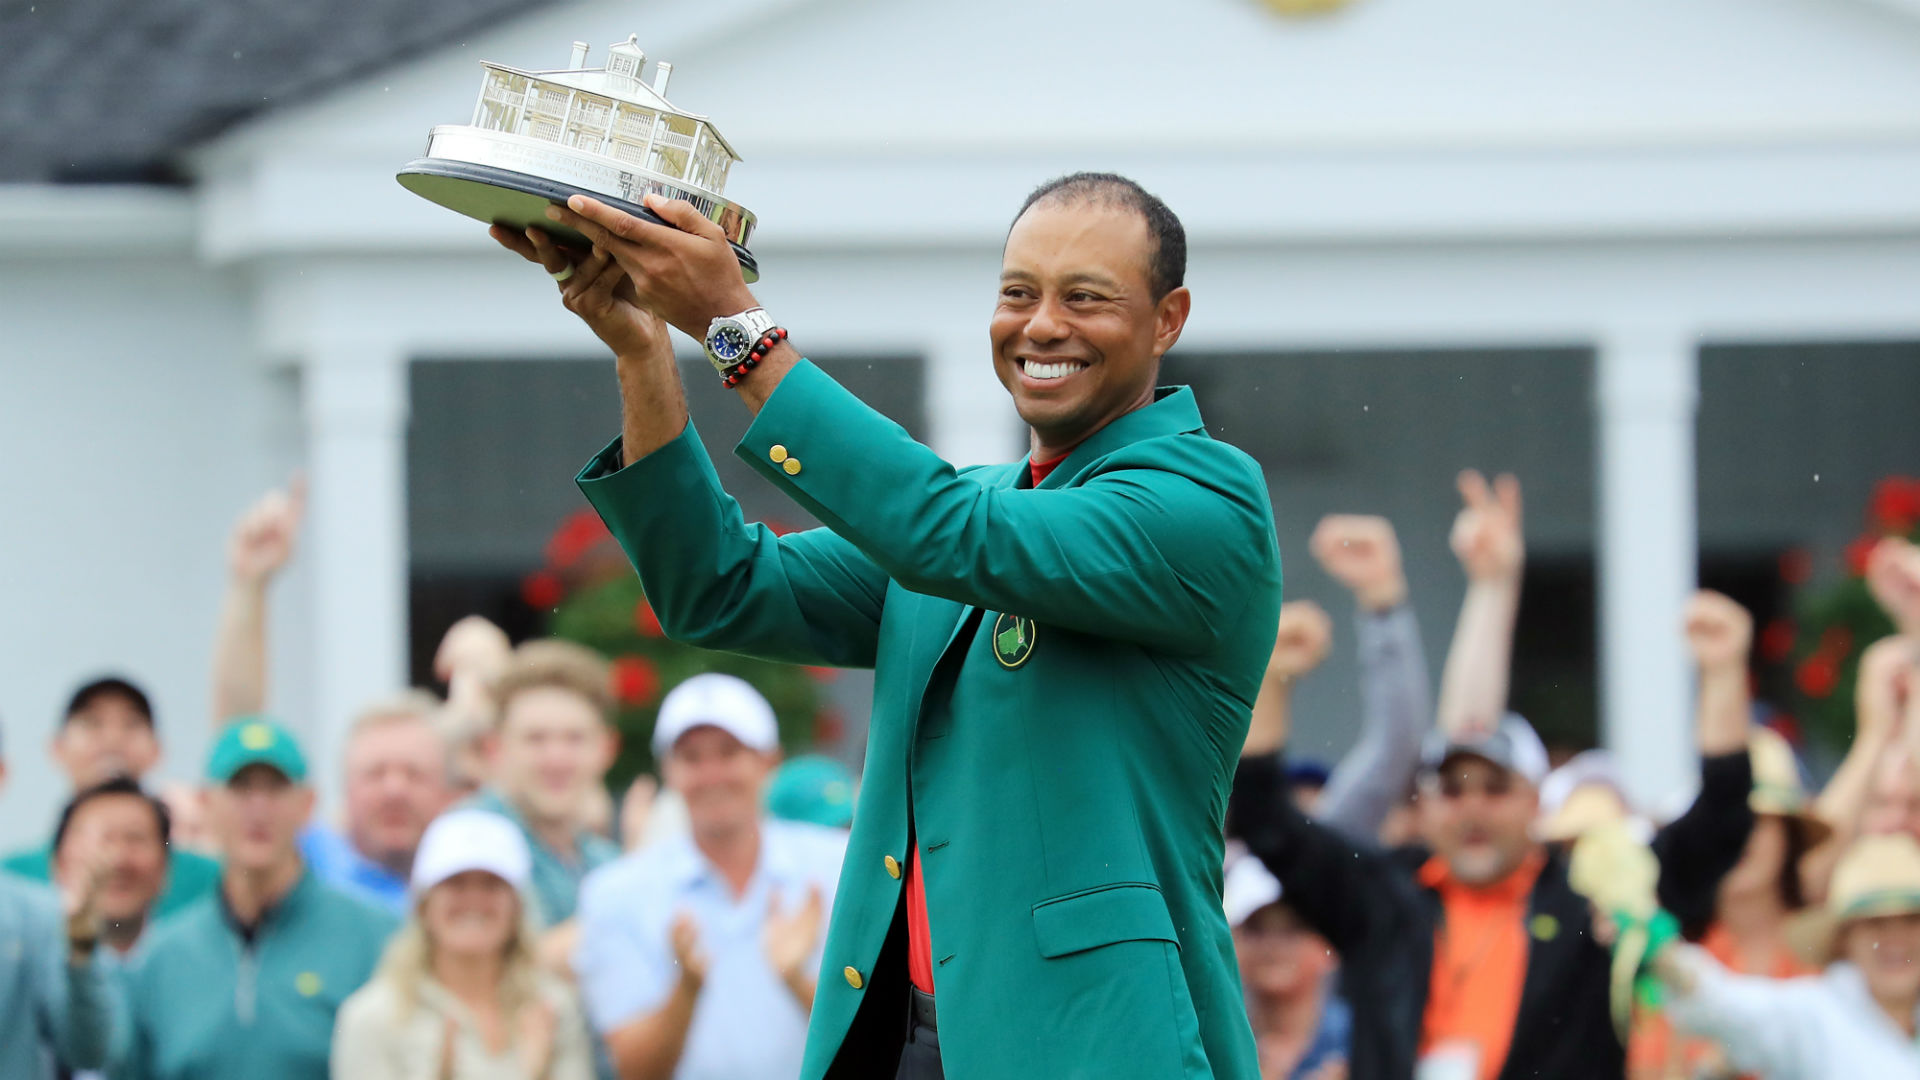 Snead's record in sight – Tiger Woods' 81 PGA Tour wins